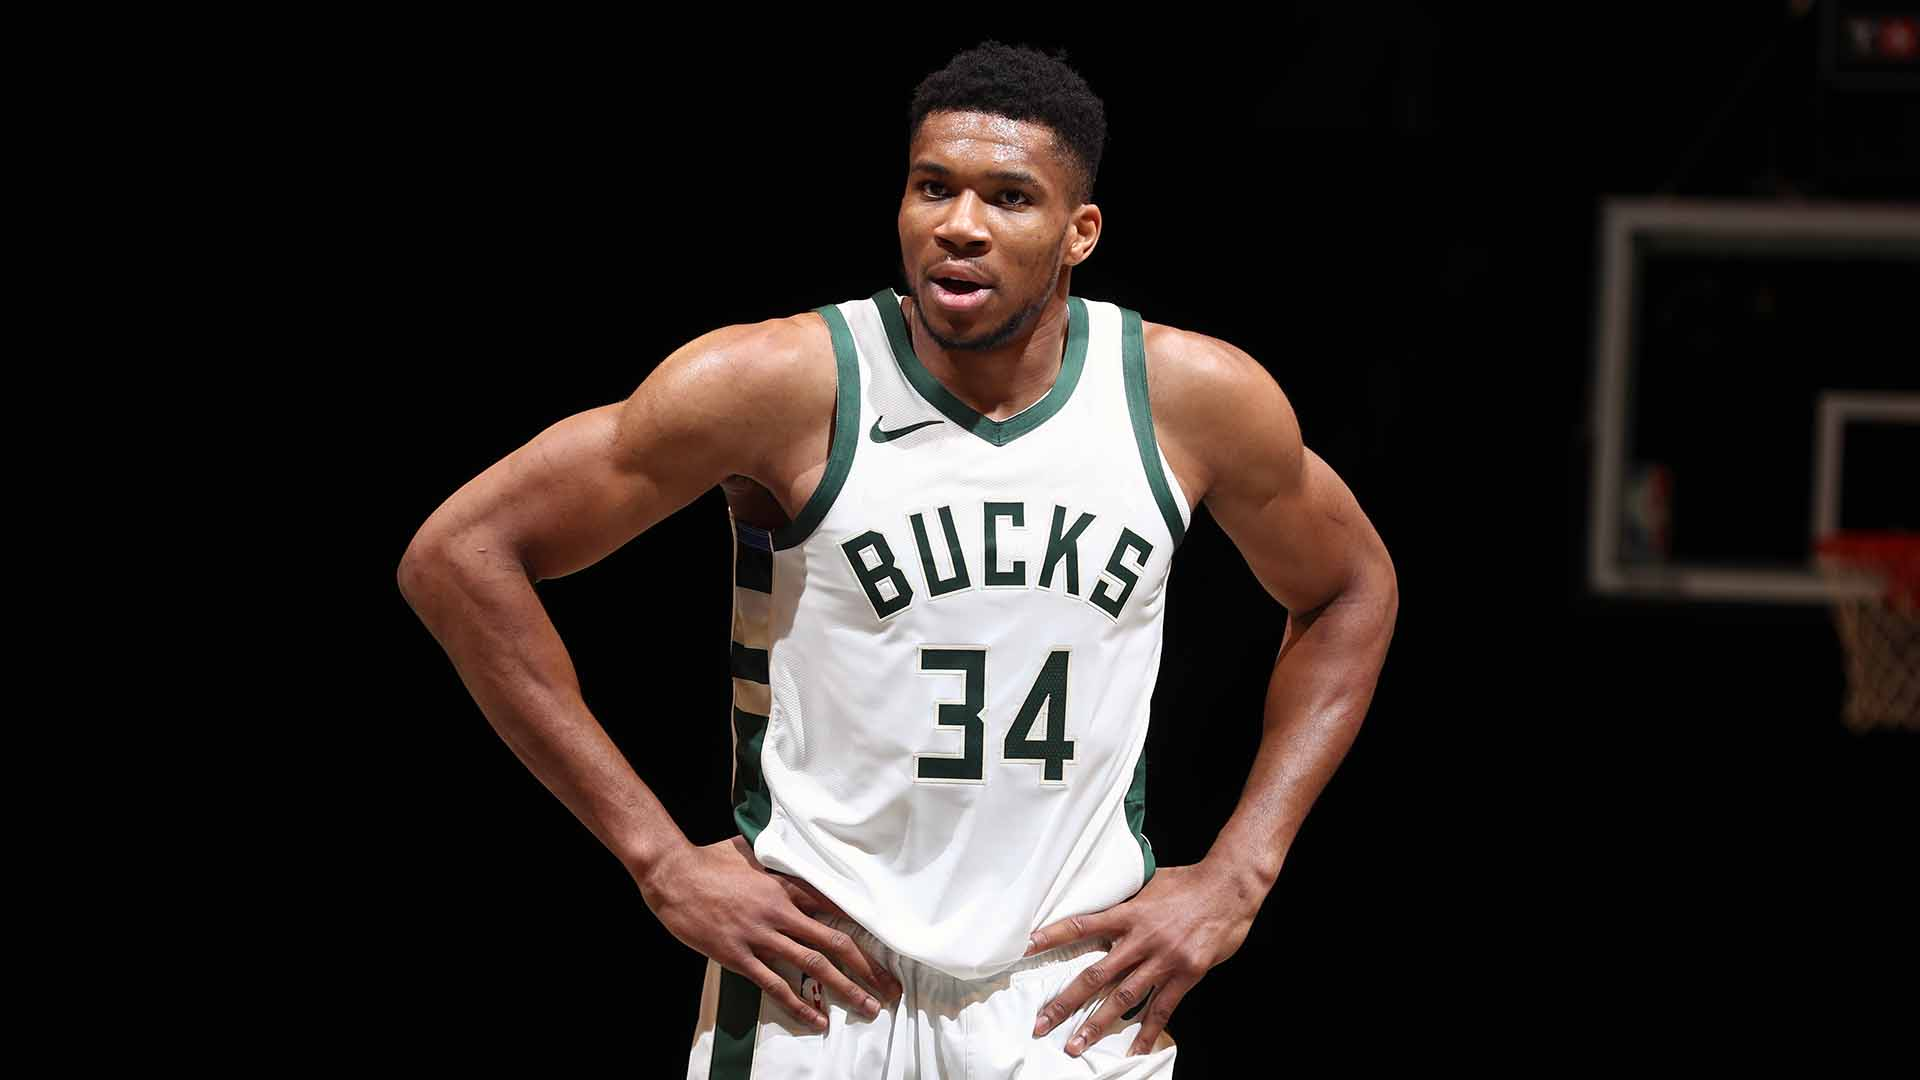 Barkley: 'Giannis Has To Get Better As A Player'